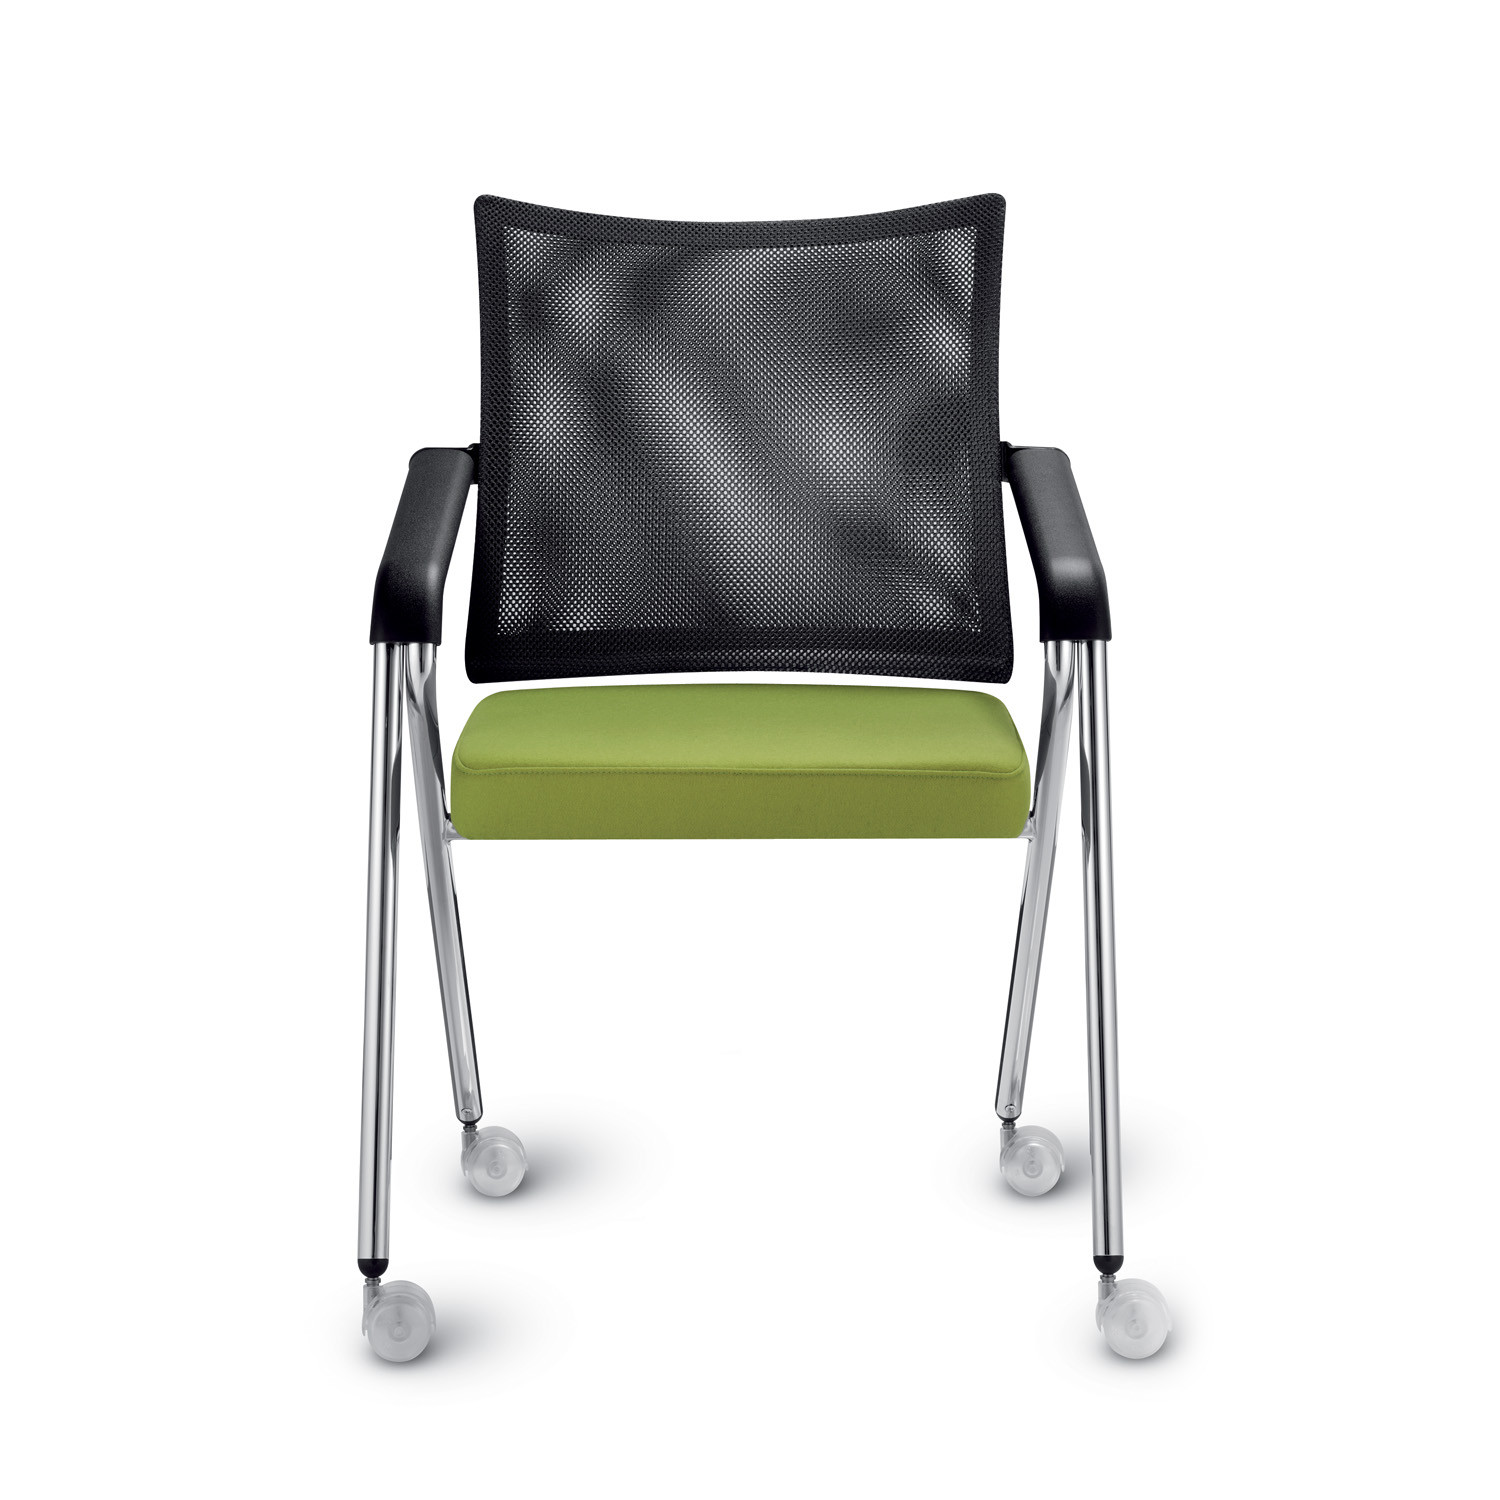 Join Me Mesh Back Chair